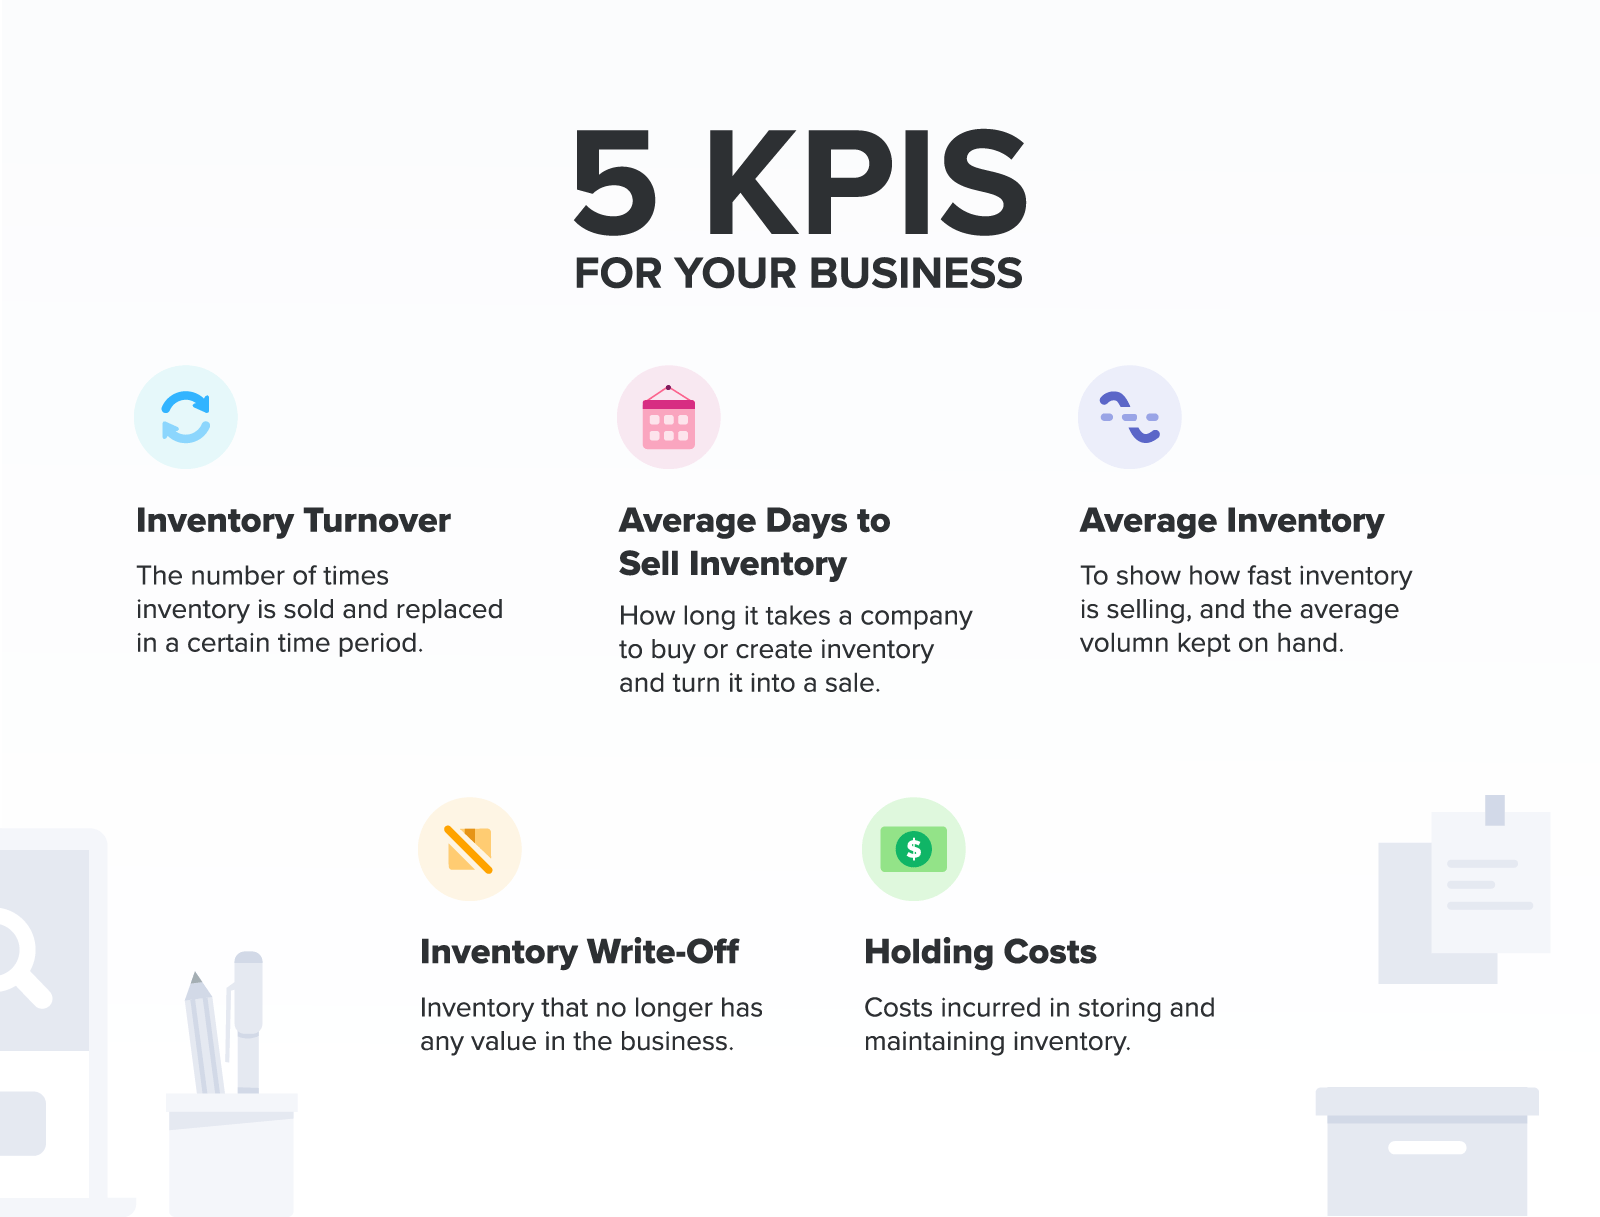 5-kpis-for-your-business@2x-1